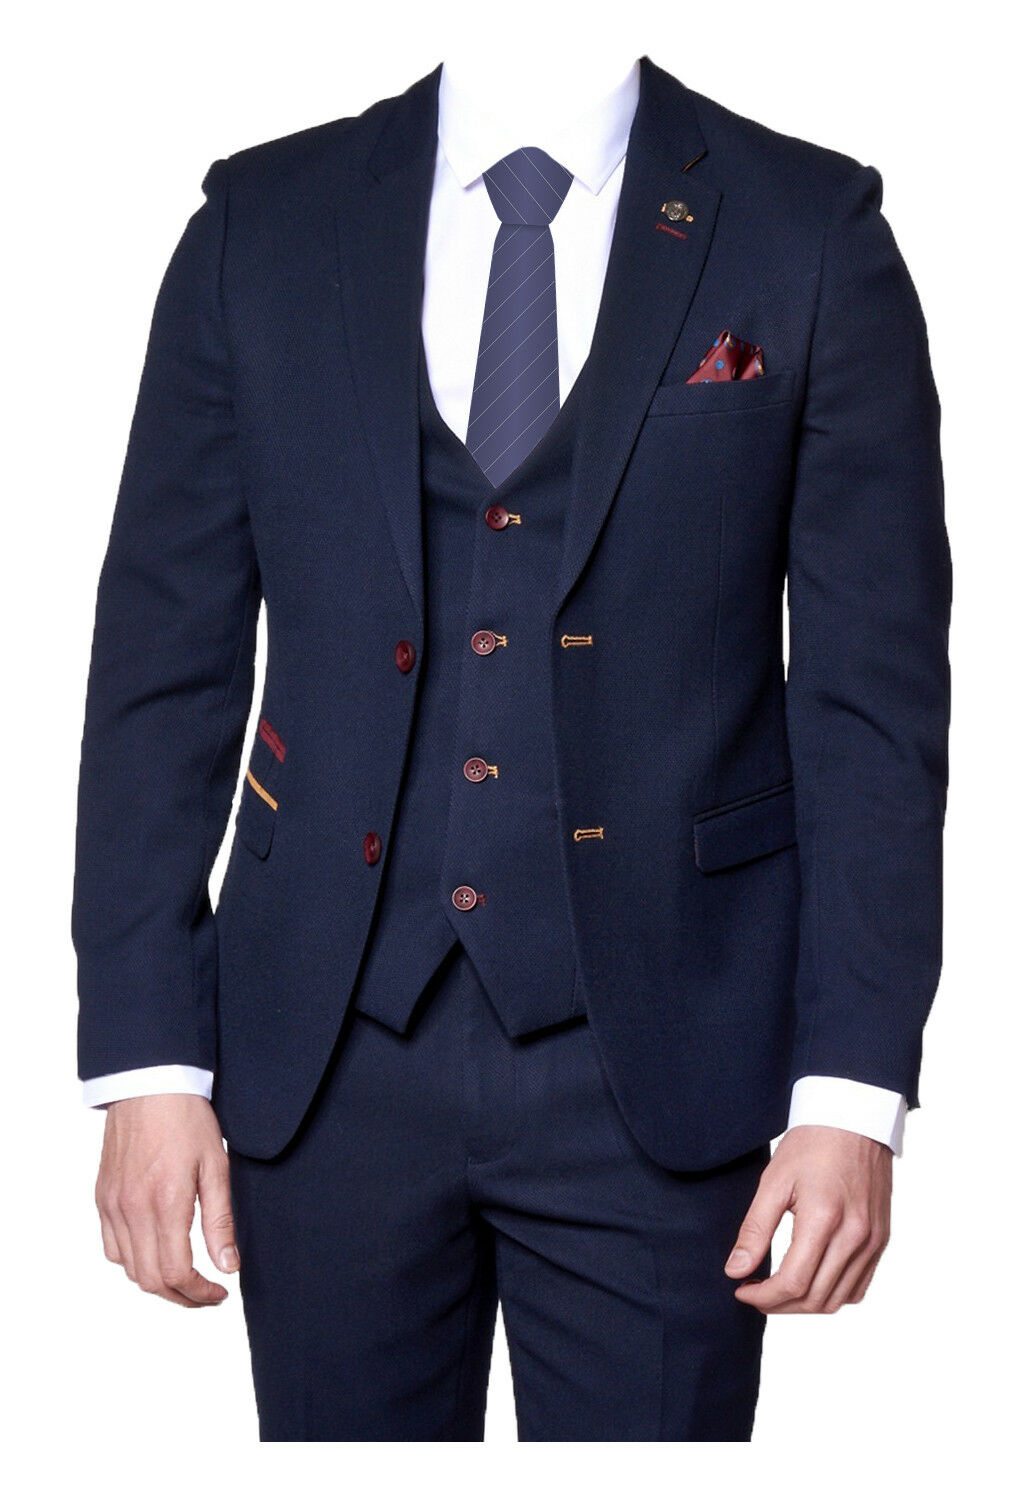 Mens Marc Darcy 3 Piece Formal Smart   Wedding   Dressy Suit JD4 - Navy bluee